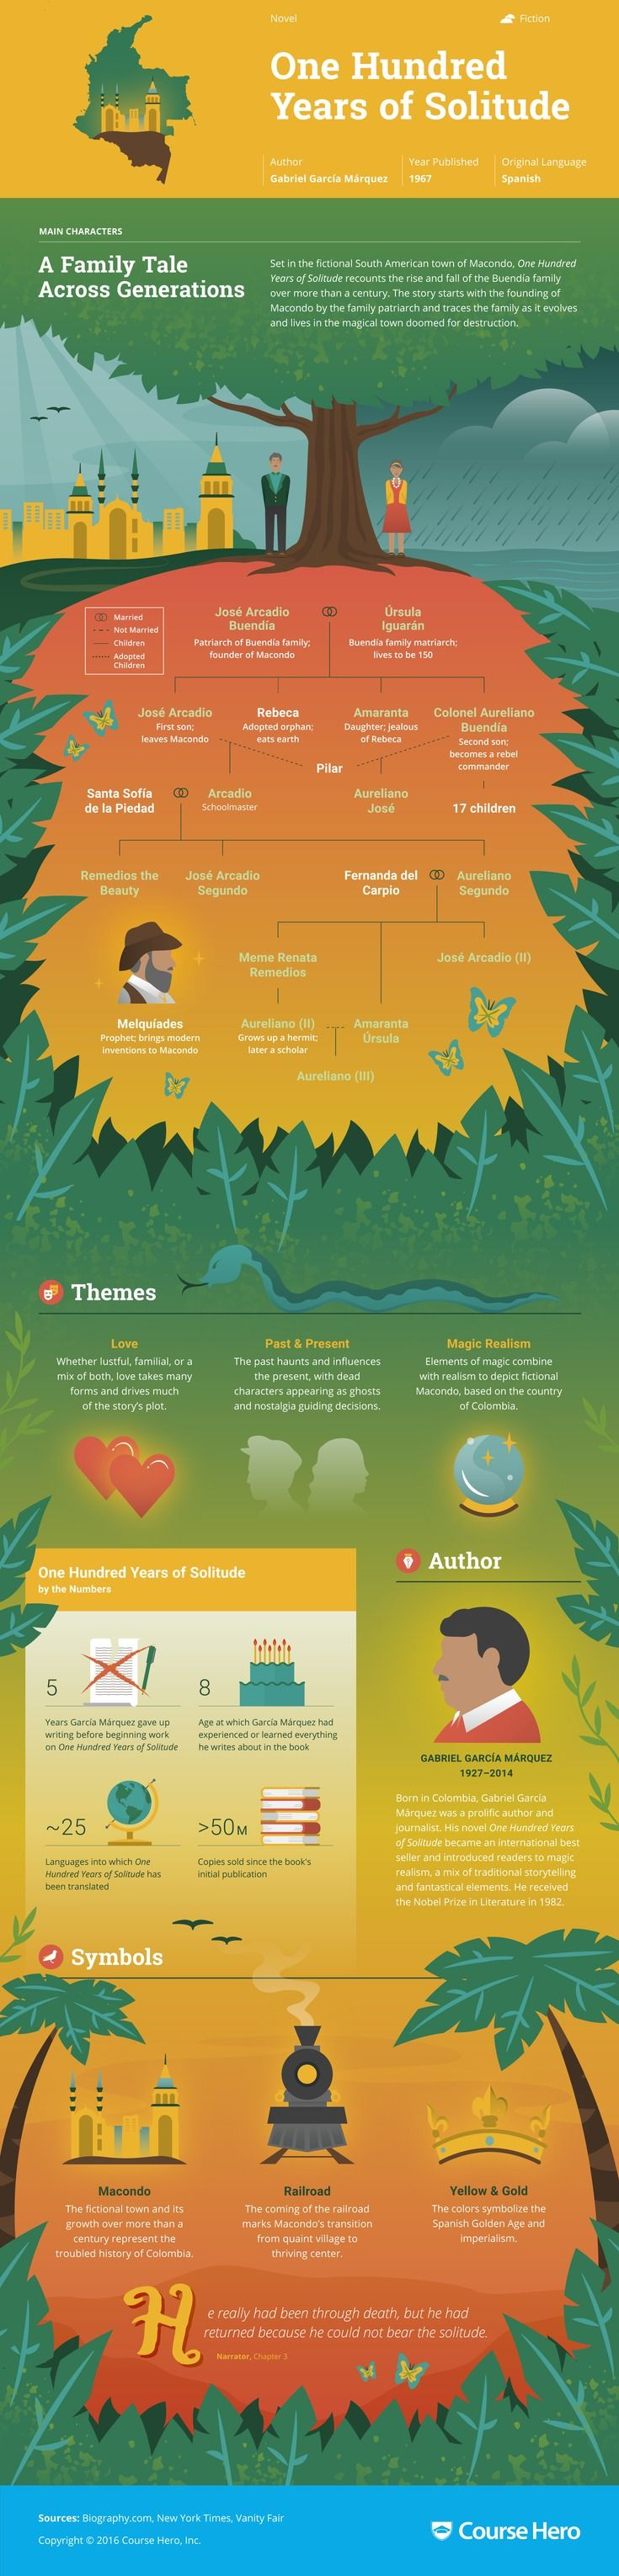 This @CourseHero infographic on One Hundred Years of Solitude is both visually stunning and informative!